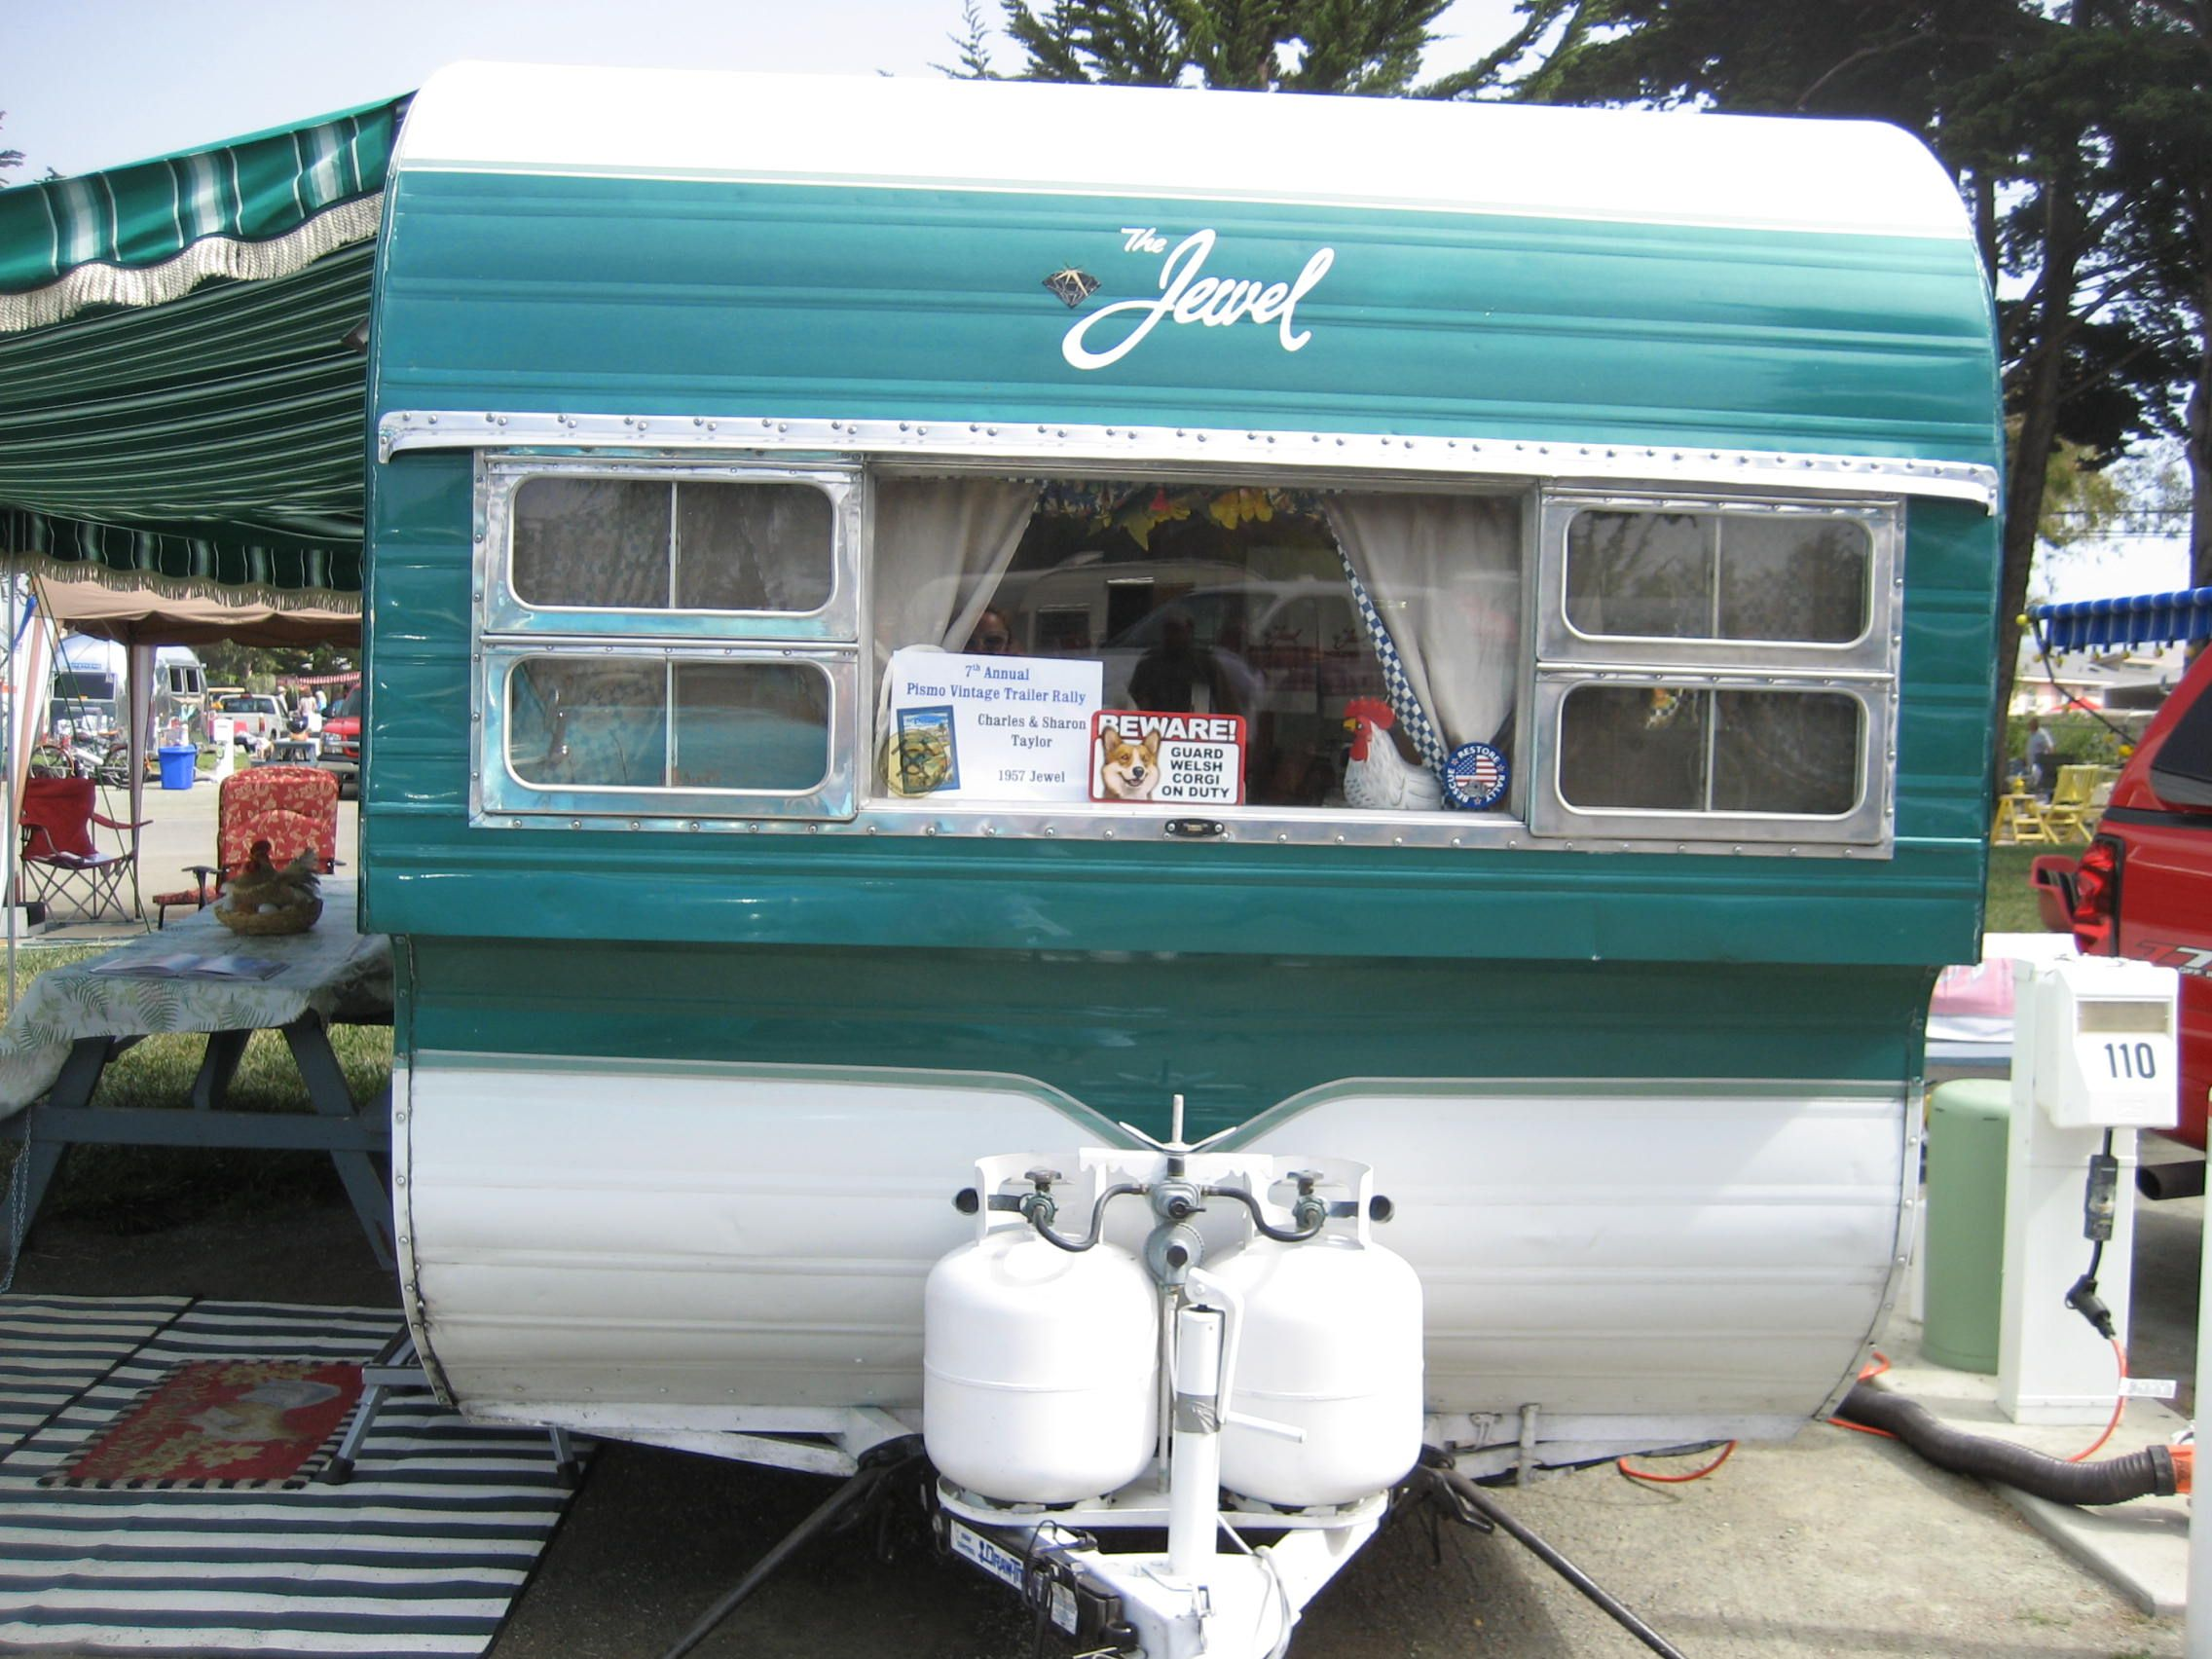 A 1957 jewel 16ft at pismo rally